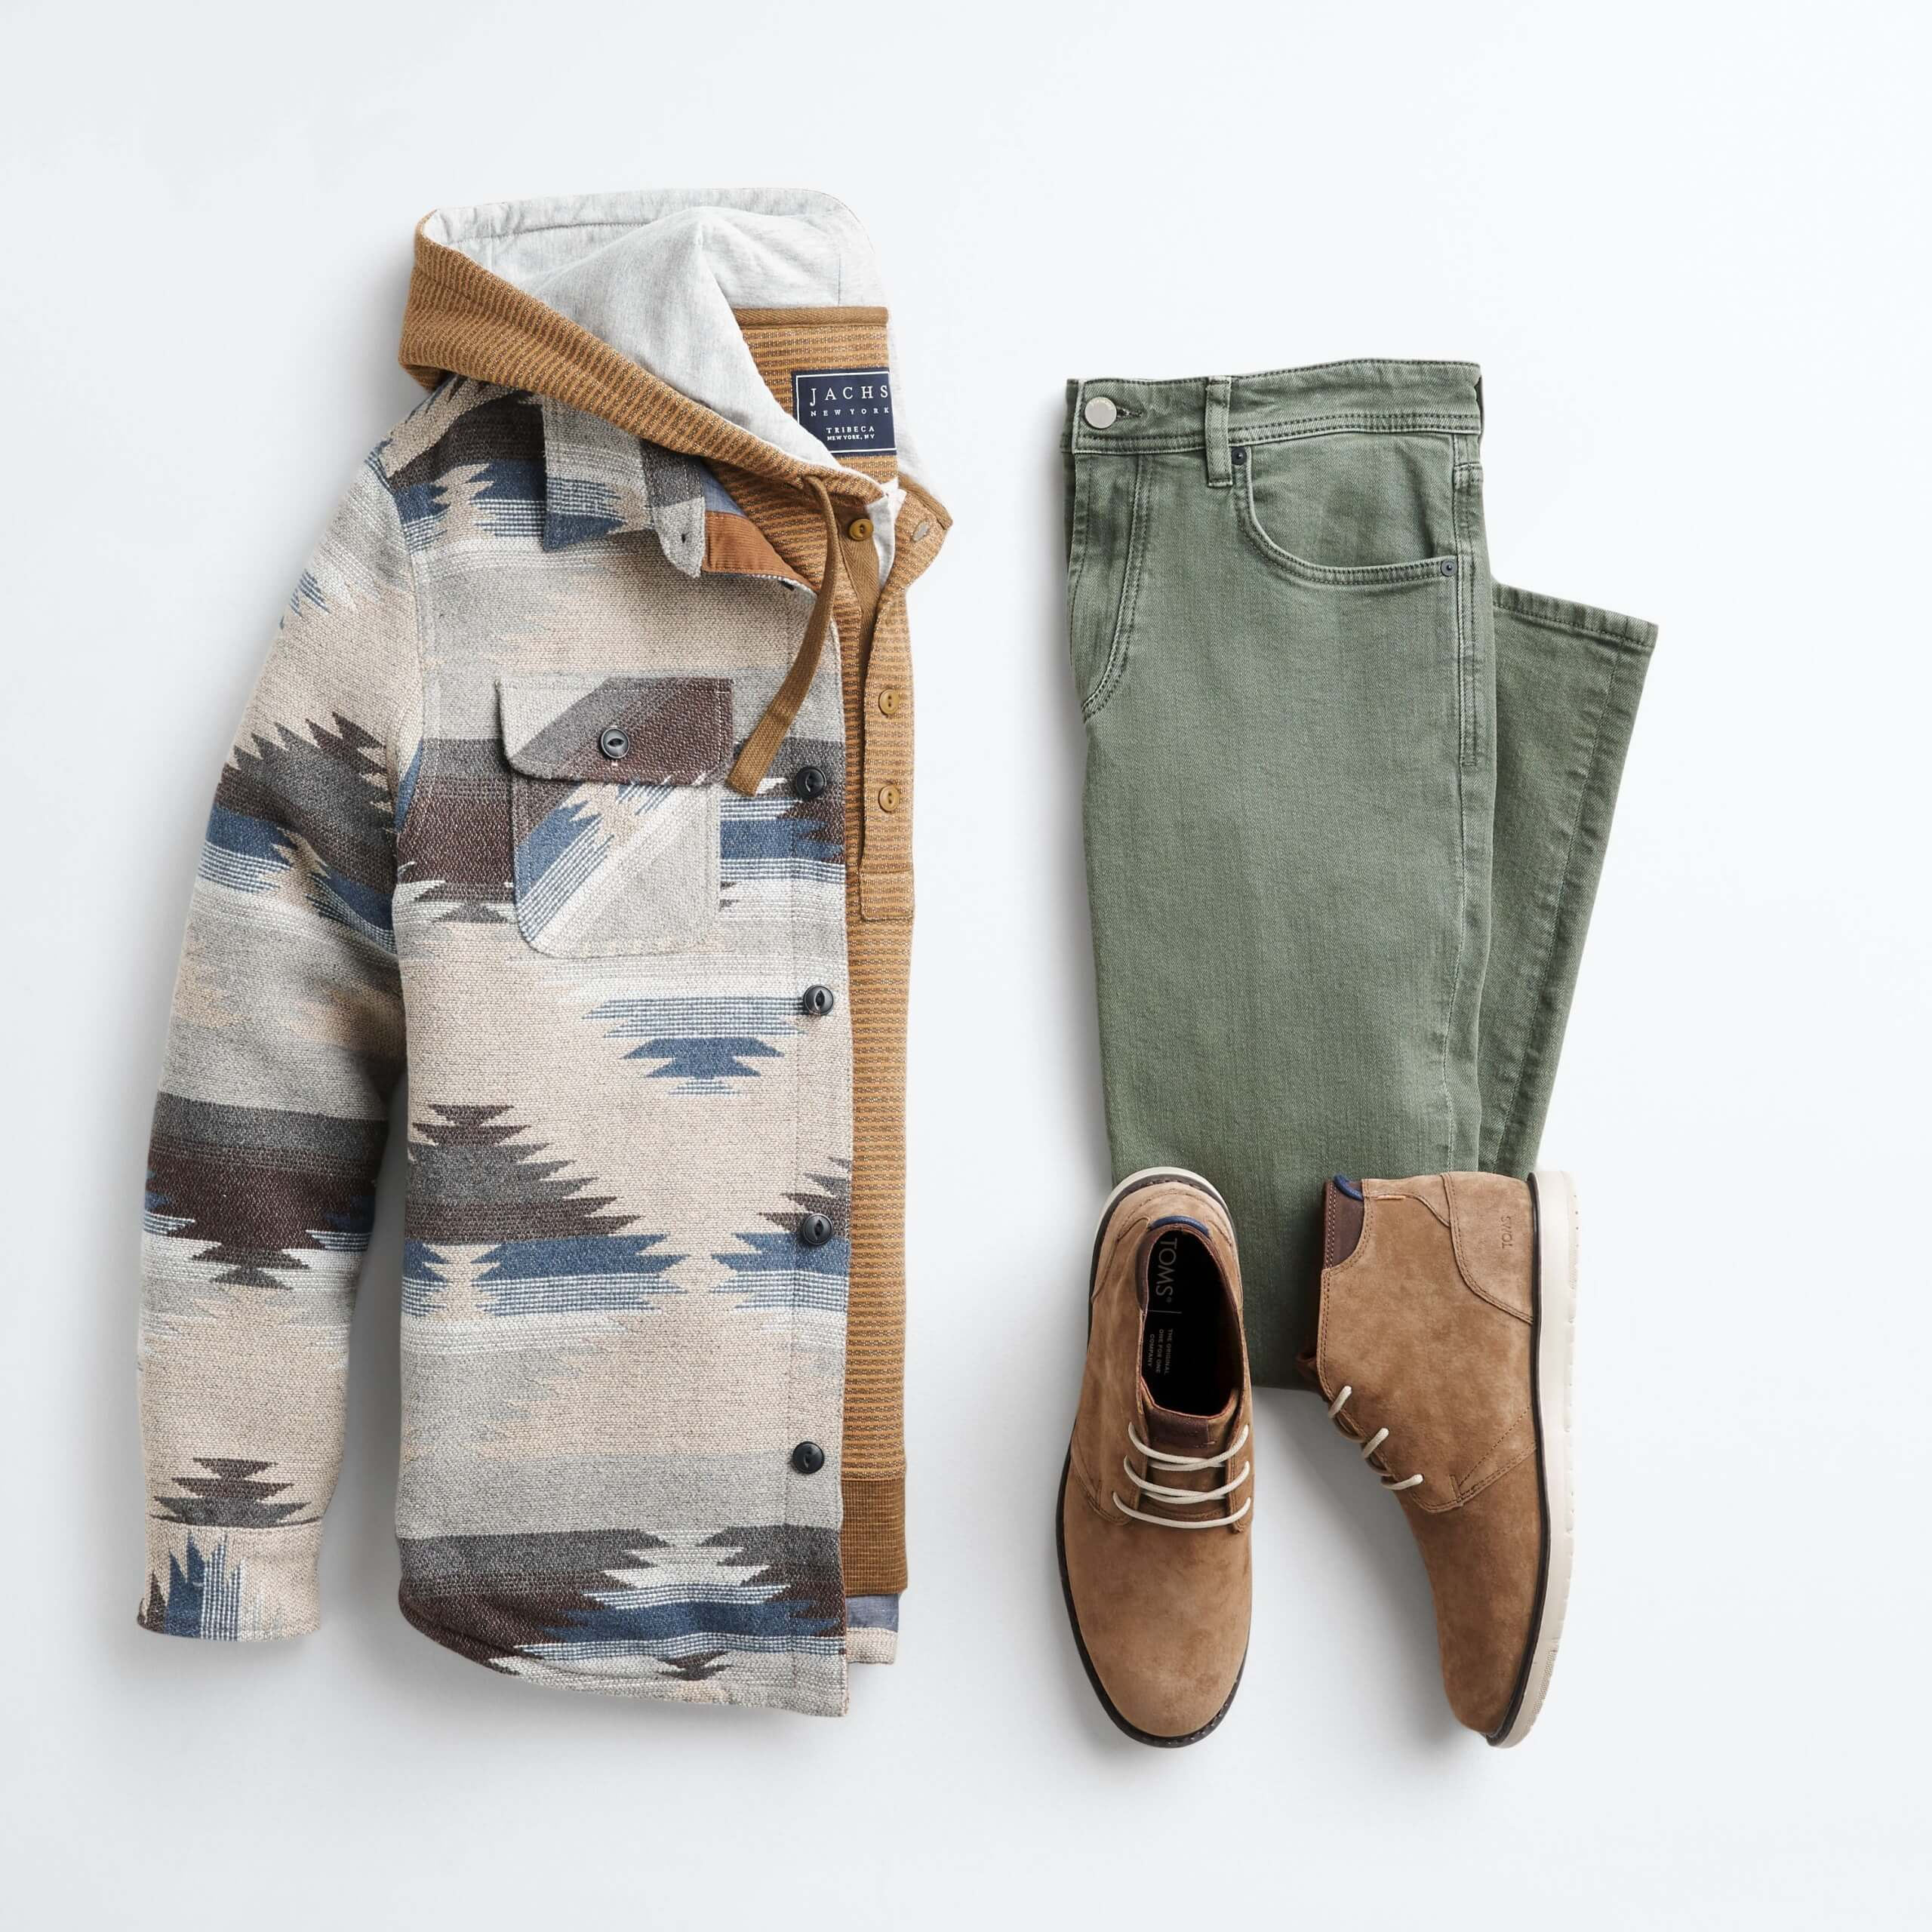 Stitch Fix Men's outfit laydown featuring aztec shirt jacket over brown hoodie, next to olive jeans and brown chukkas.